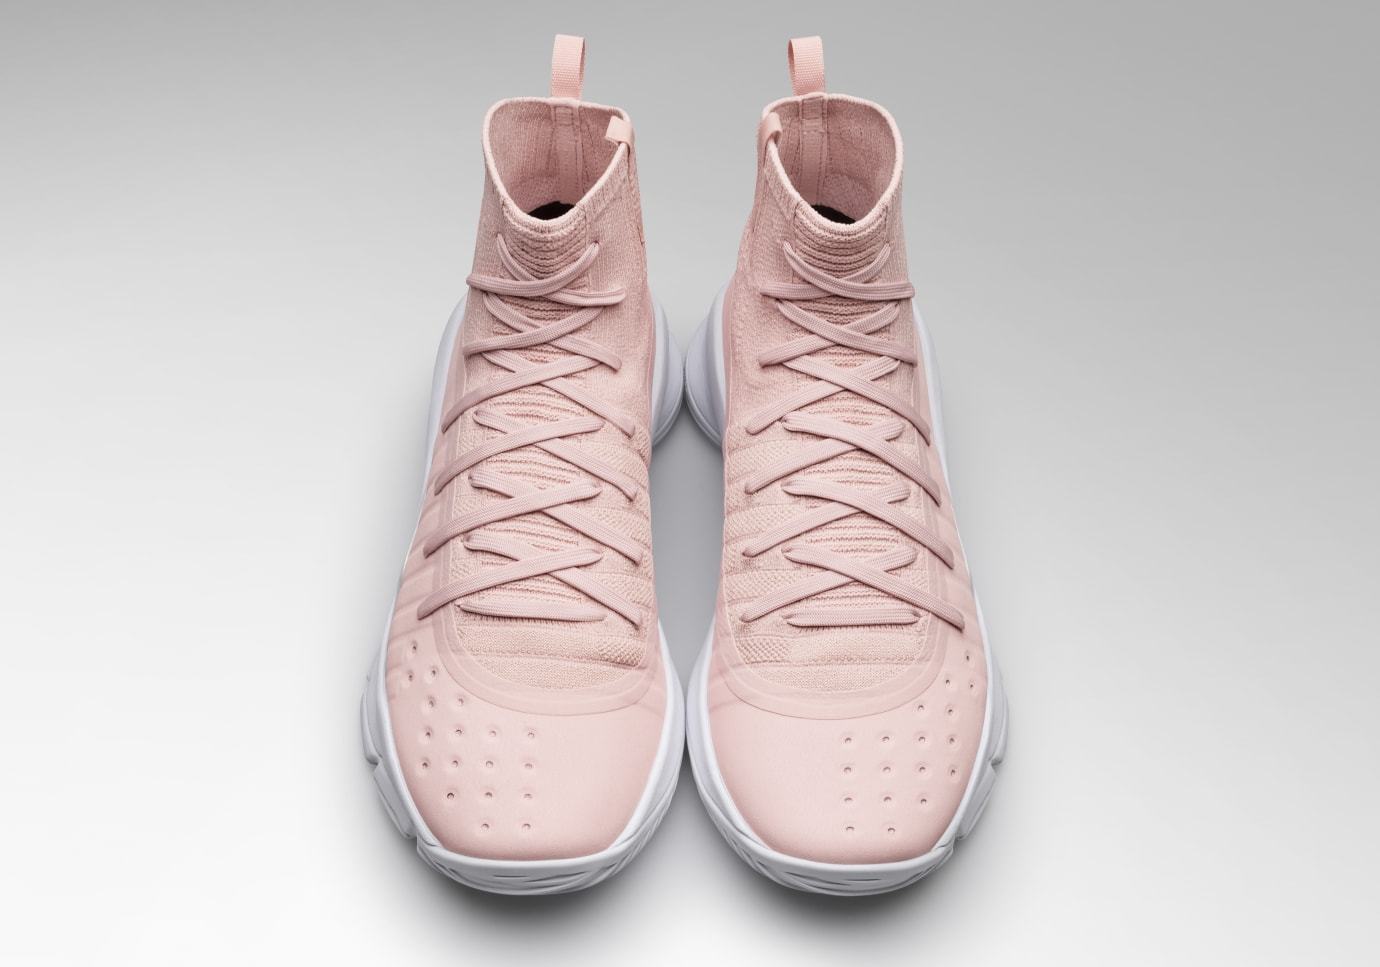 Under Armour Curry 4 'Flushed Pink' 3